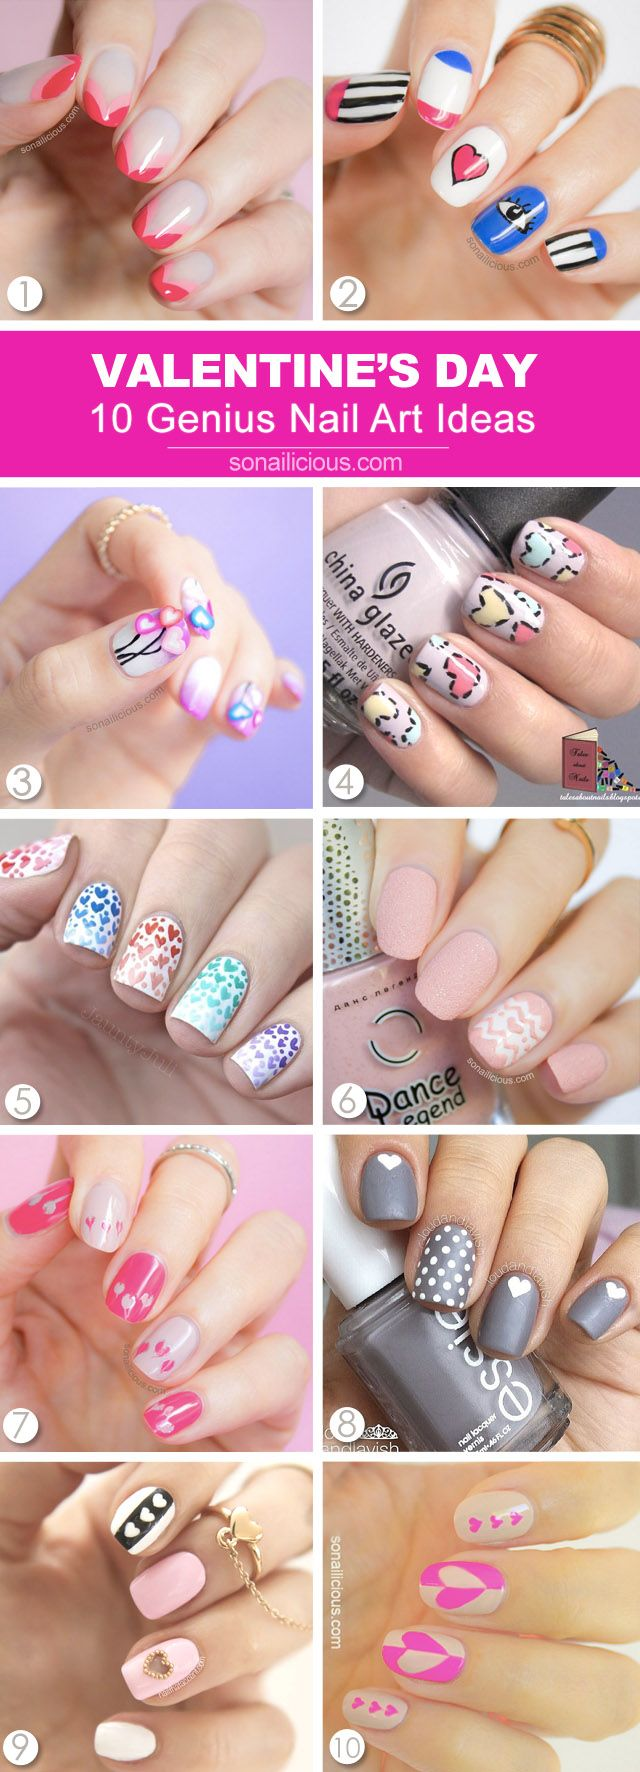 10 Genius Valentine's Day Nail Art Ideas